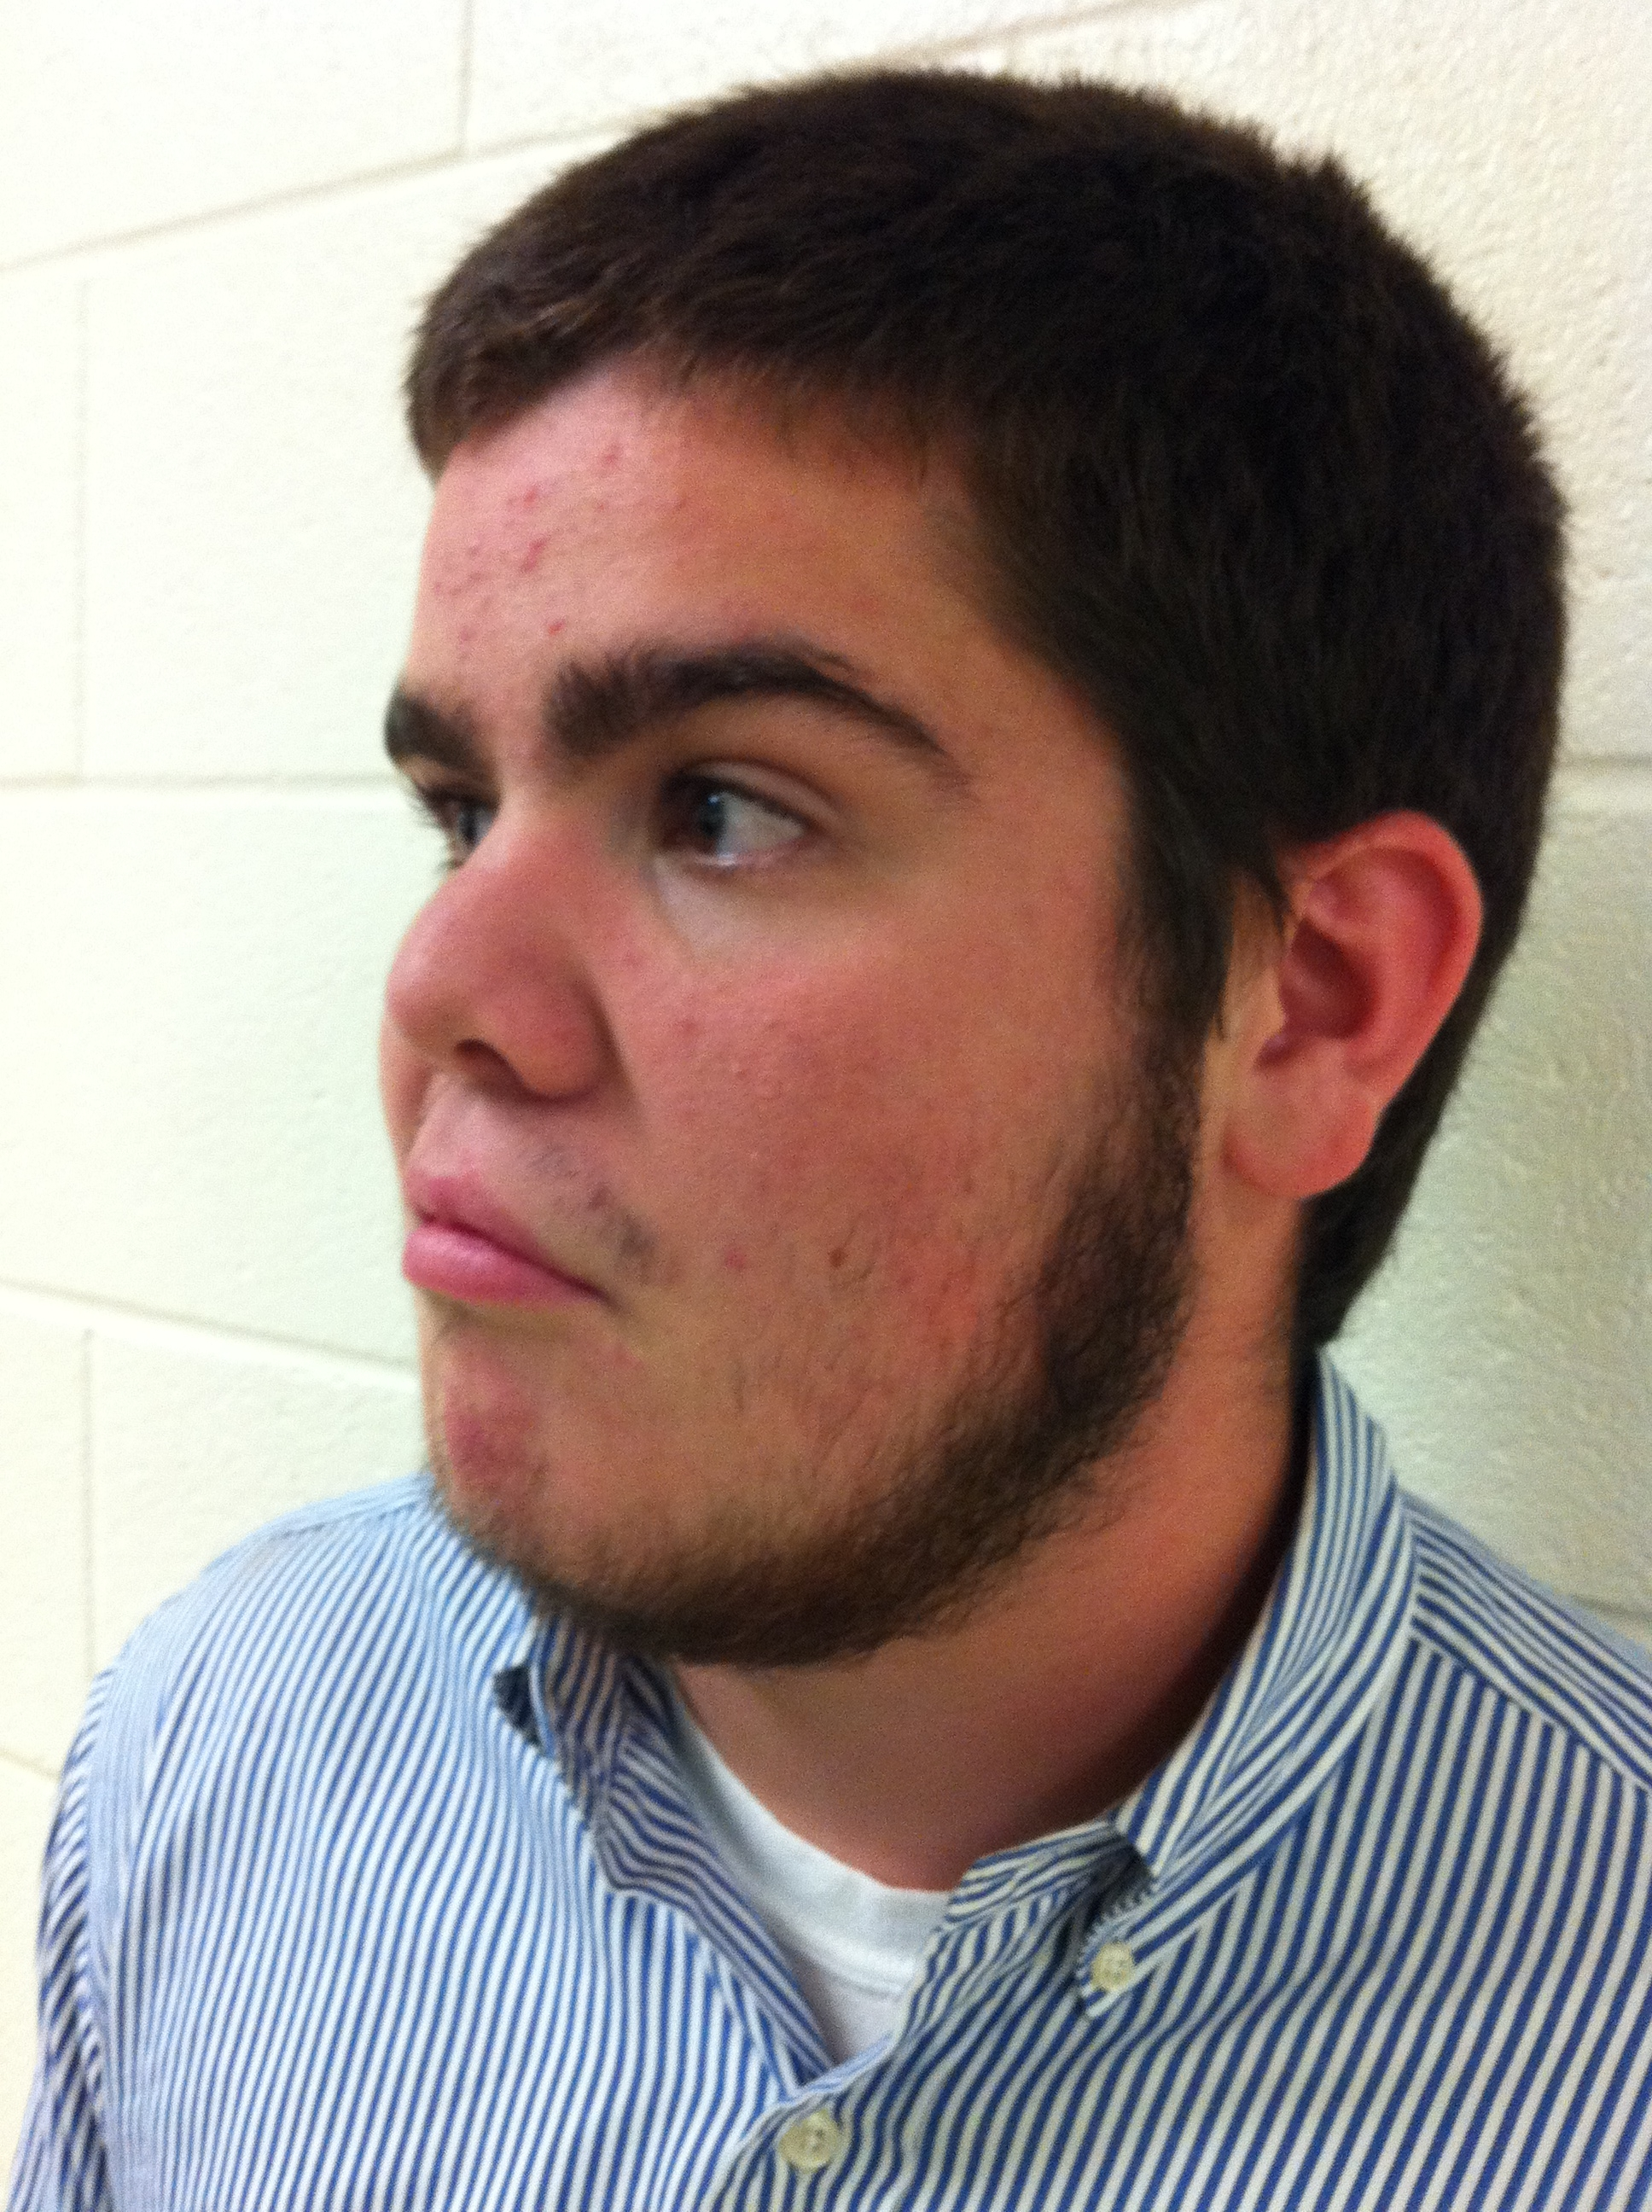 Alex Doane, sophomore, flaunts his burly beard. He, as well as other Leesville students, decided to participate in No Shave November. Photo courtesy of Hailey Stephenson.